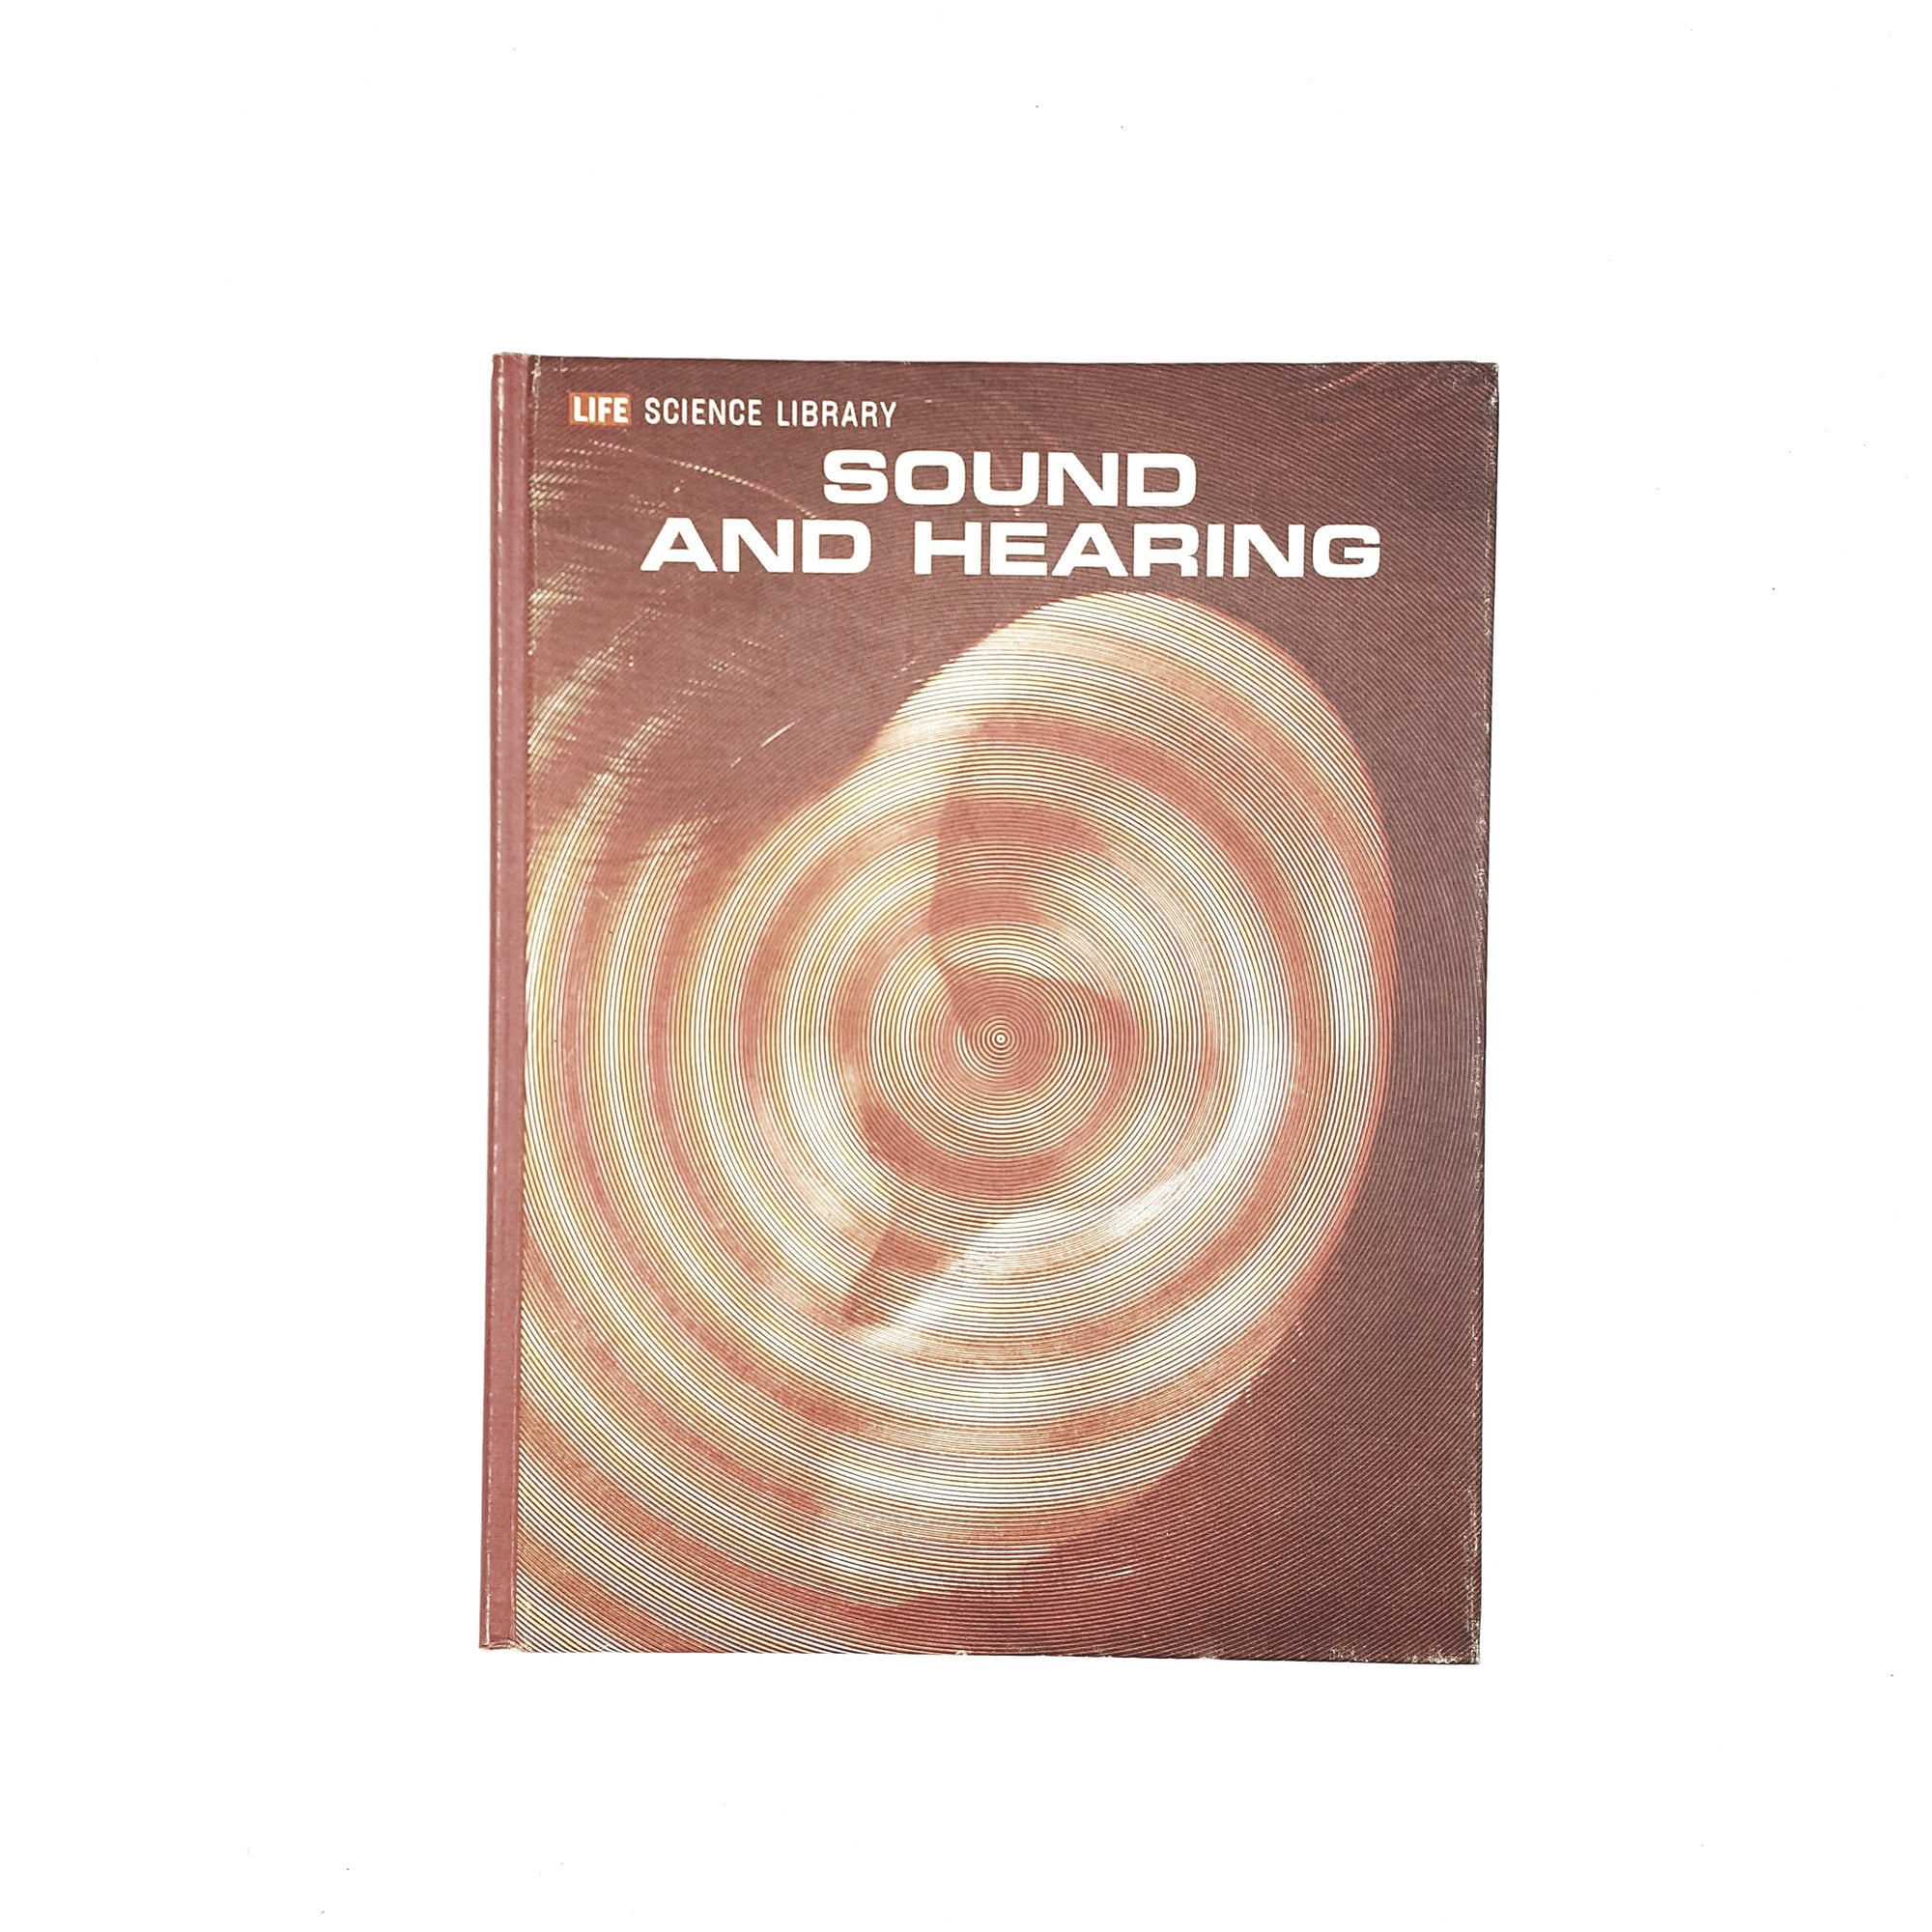 Life Science Library: Sound and Hearing 1973